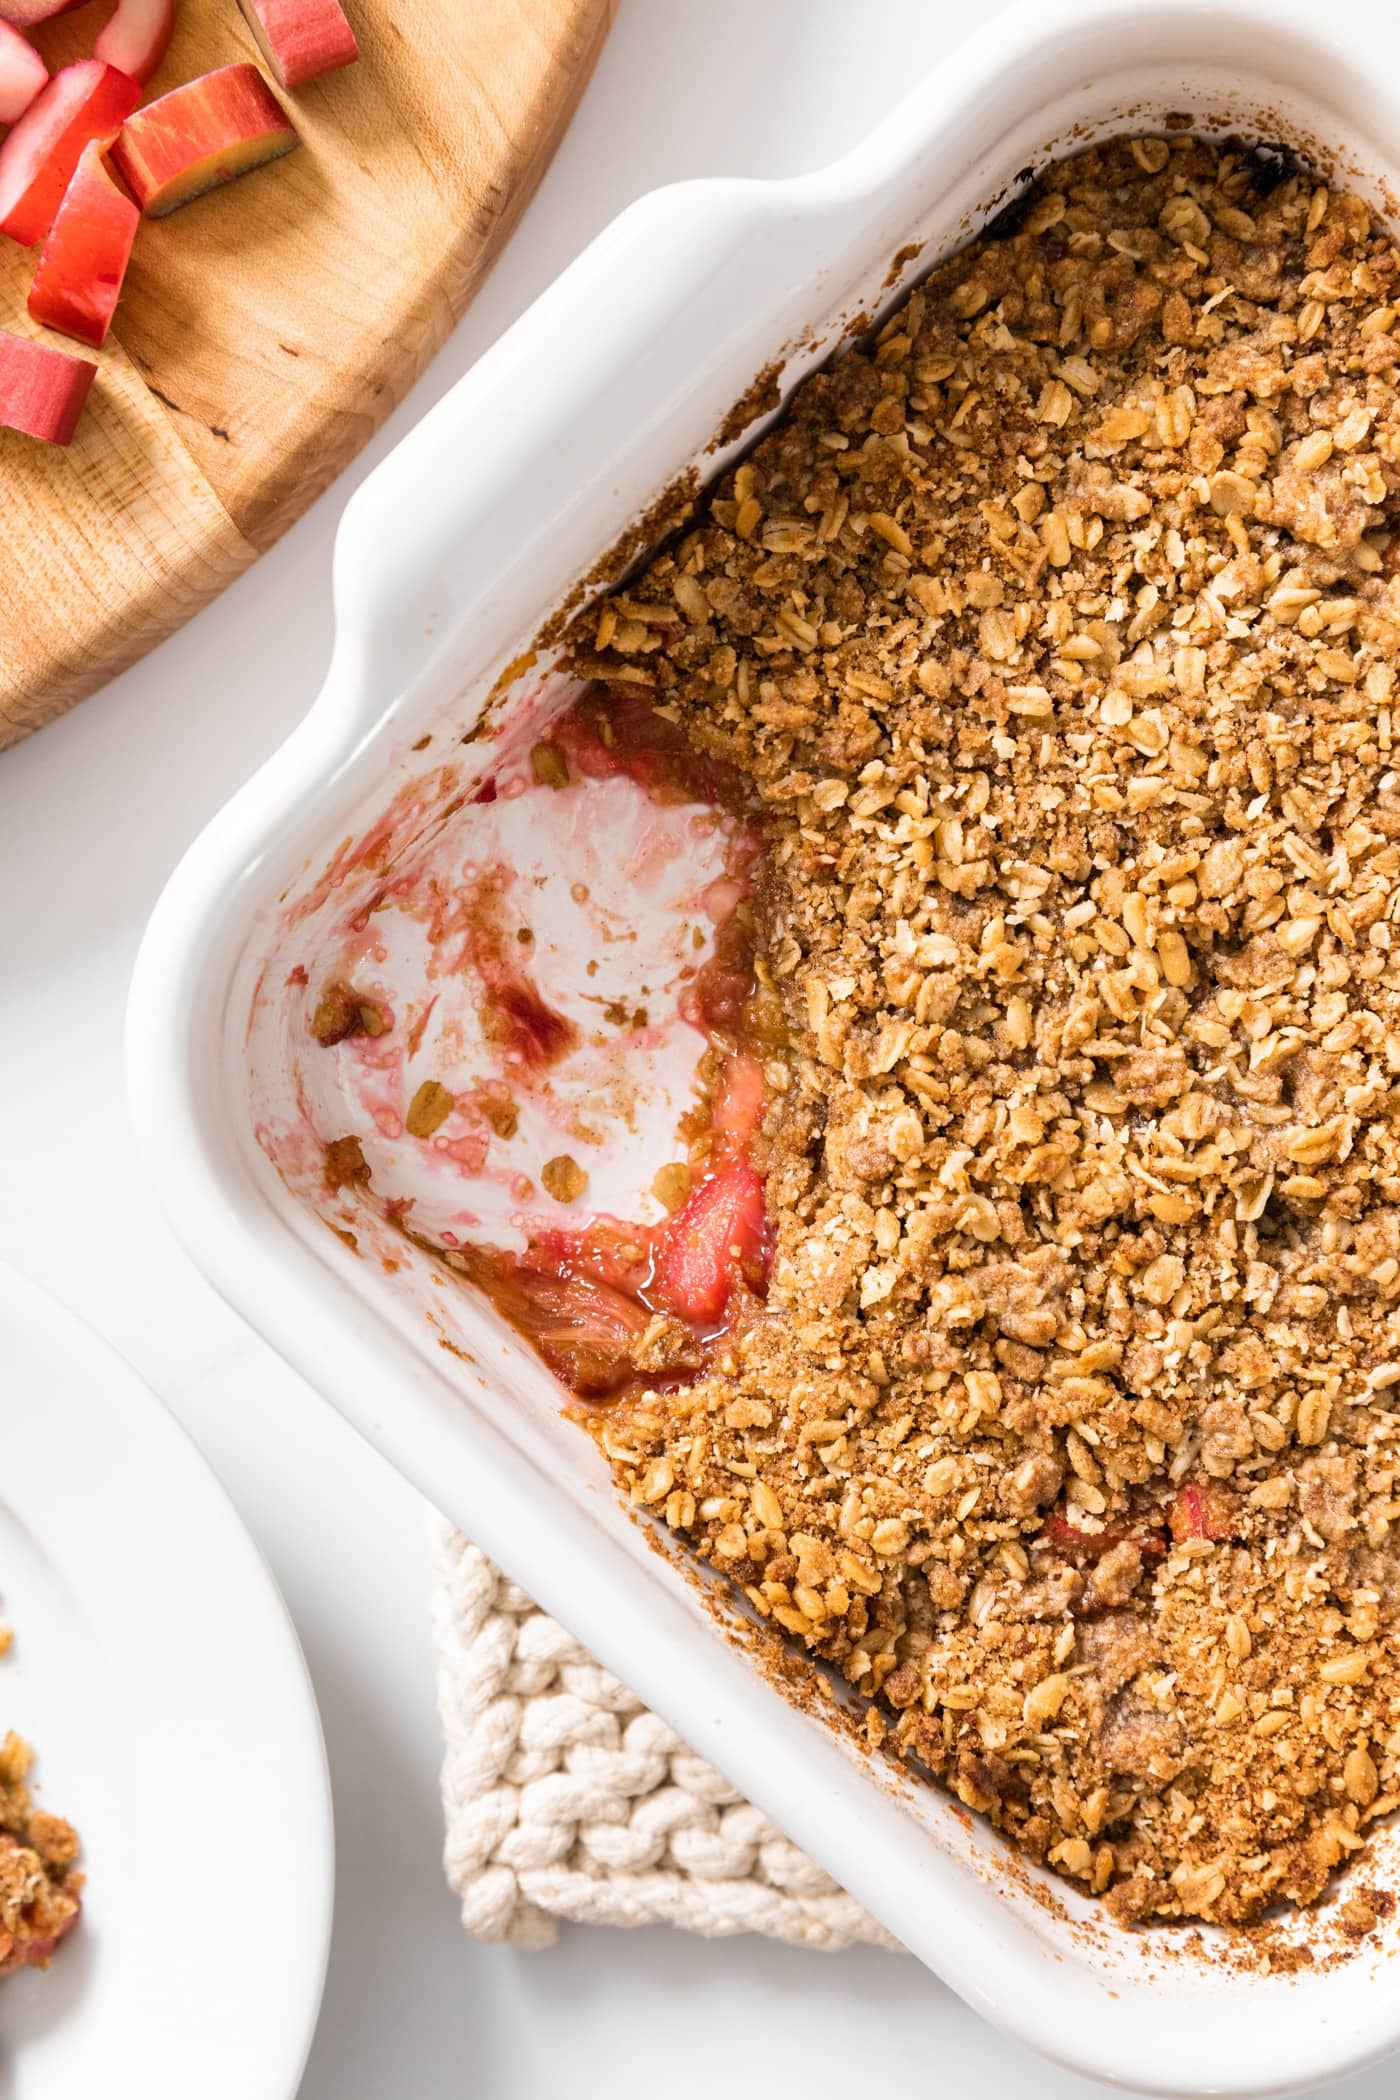 Top down view of white baking dish filled with rhubarb crisp with light brown topping with a scoop taken out